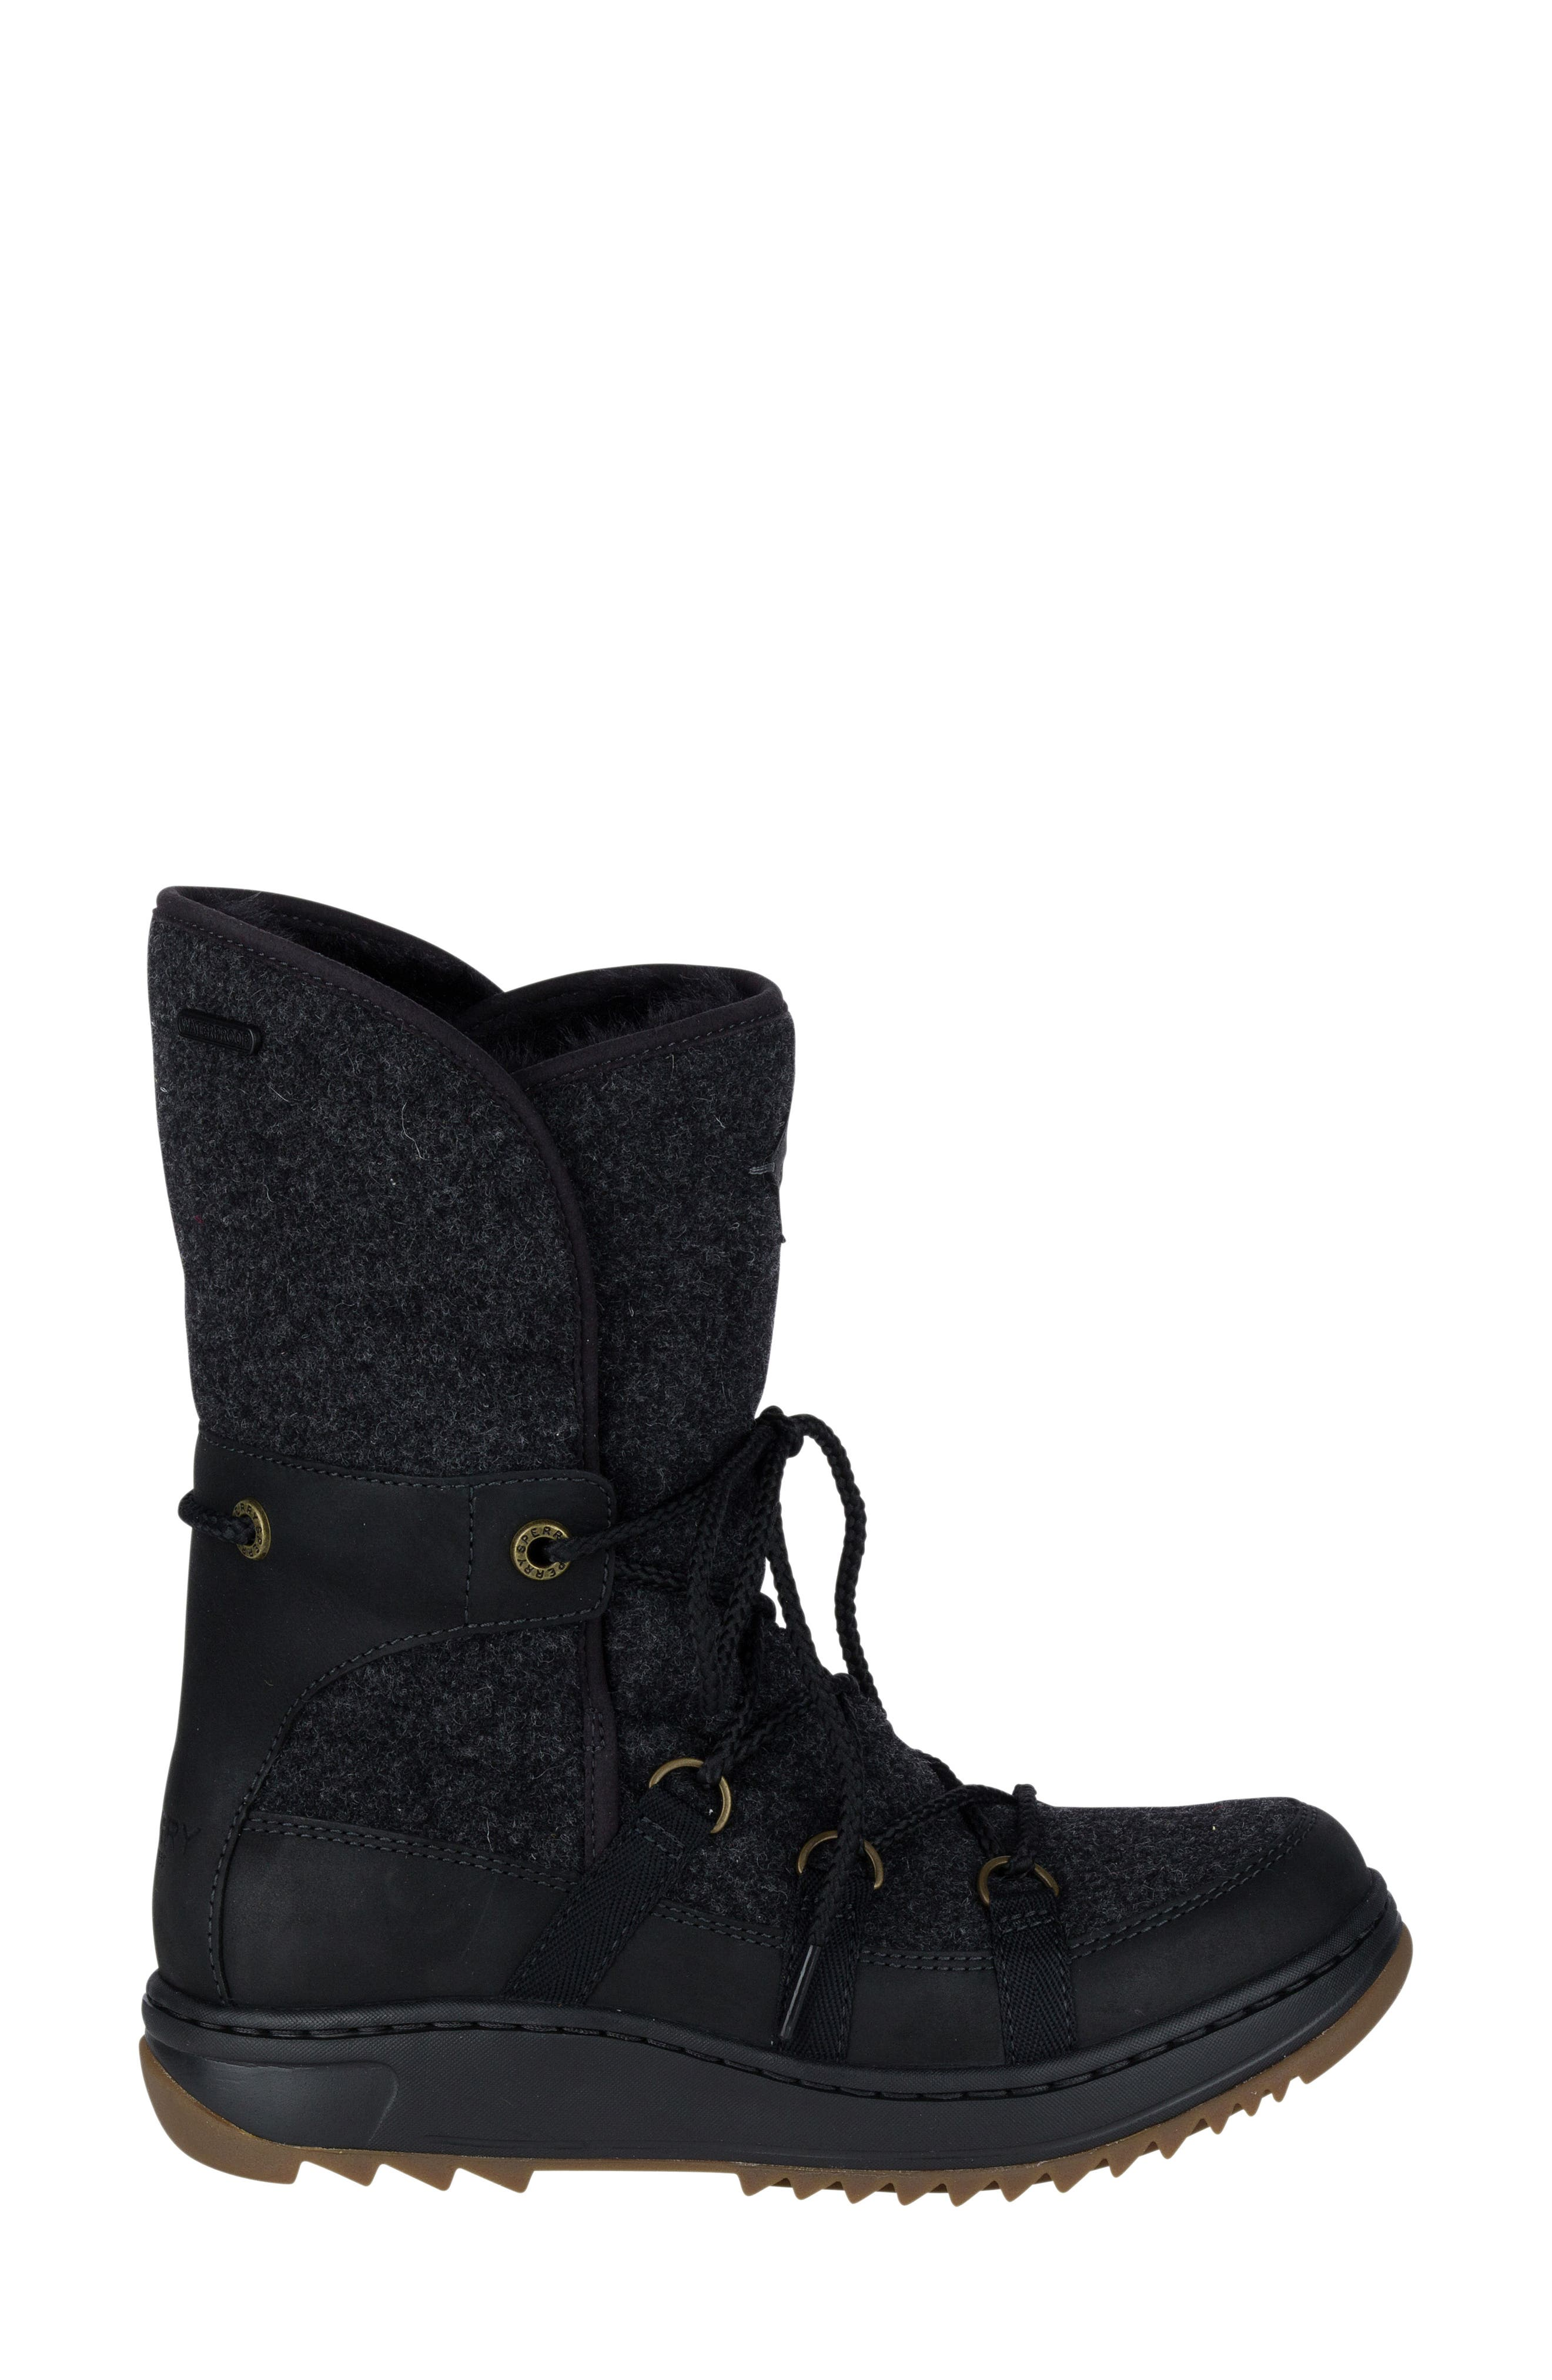 Powder Ice Cap Thinsulate Insulated Water Resistant Boot,                             Alternate thumbnail 3, color,                             001